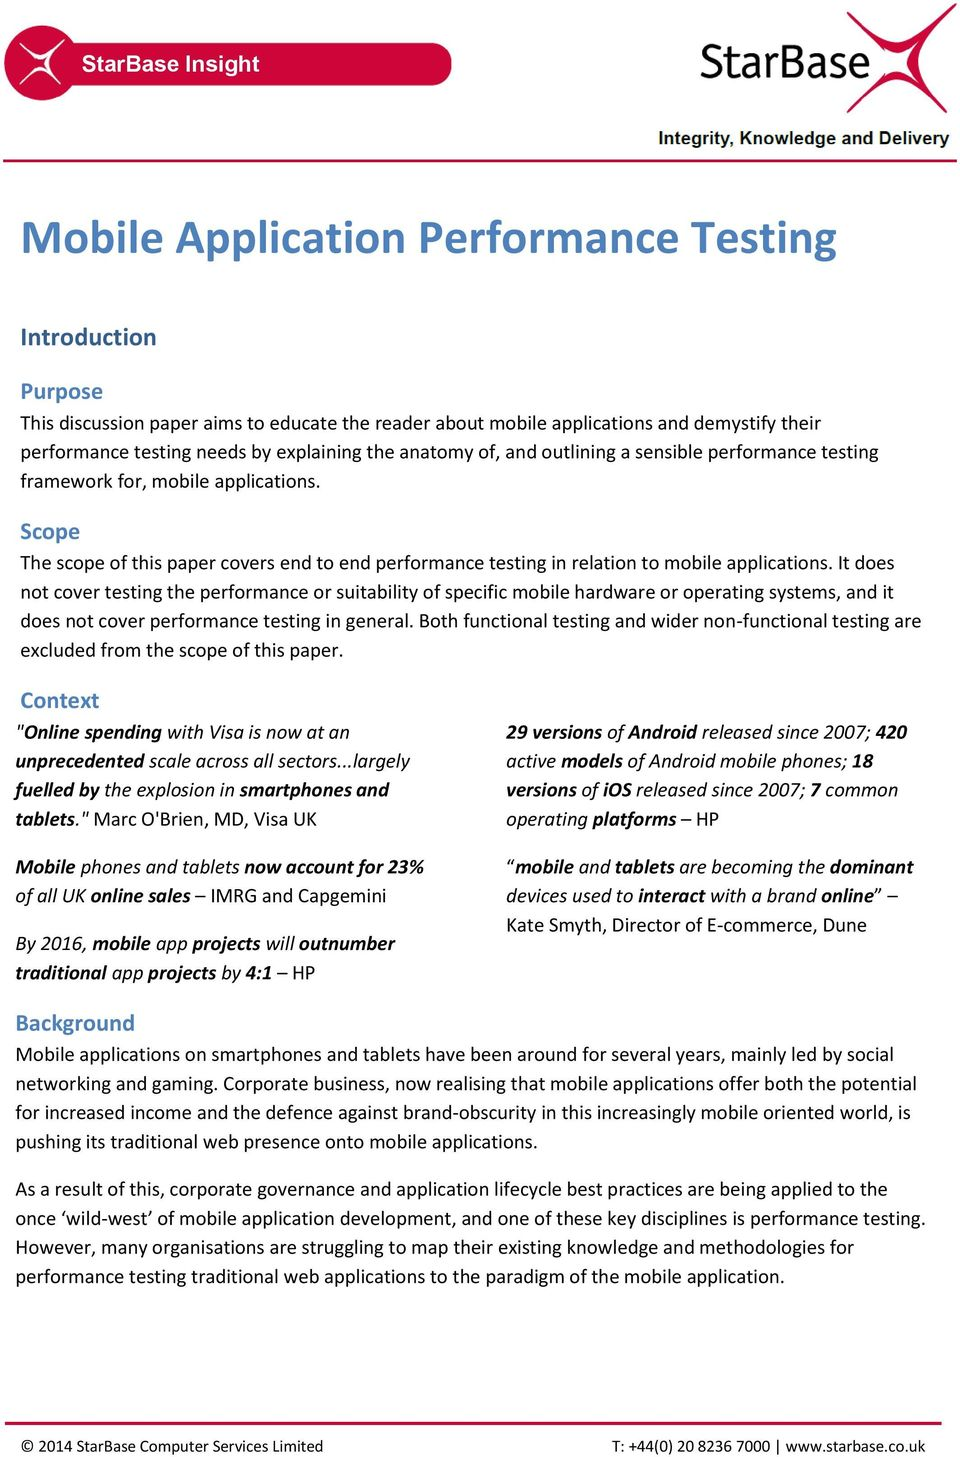 Mobile Application Performance Testing - PDF